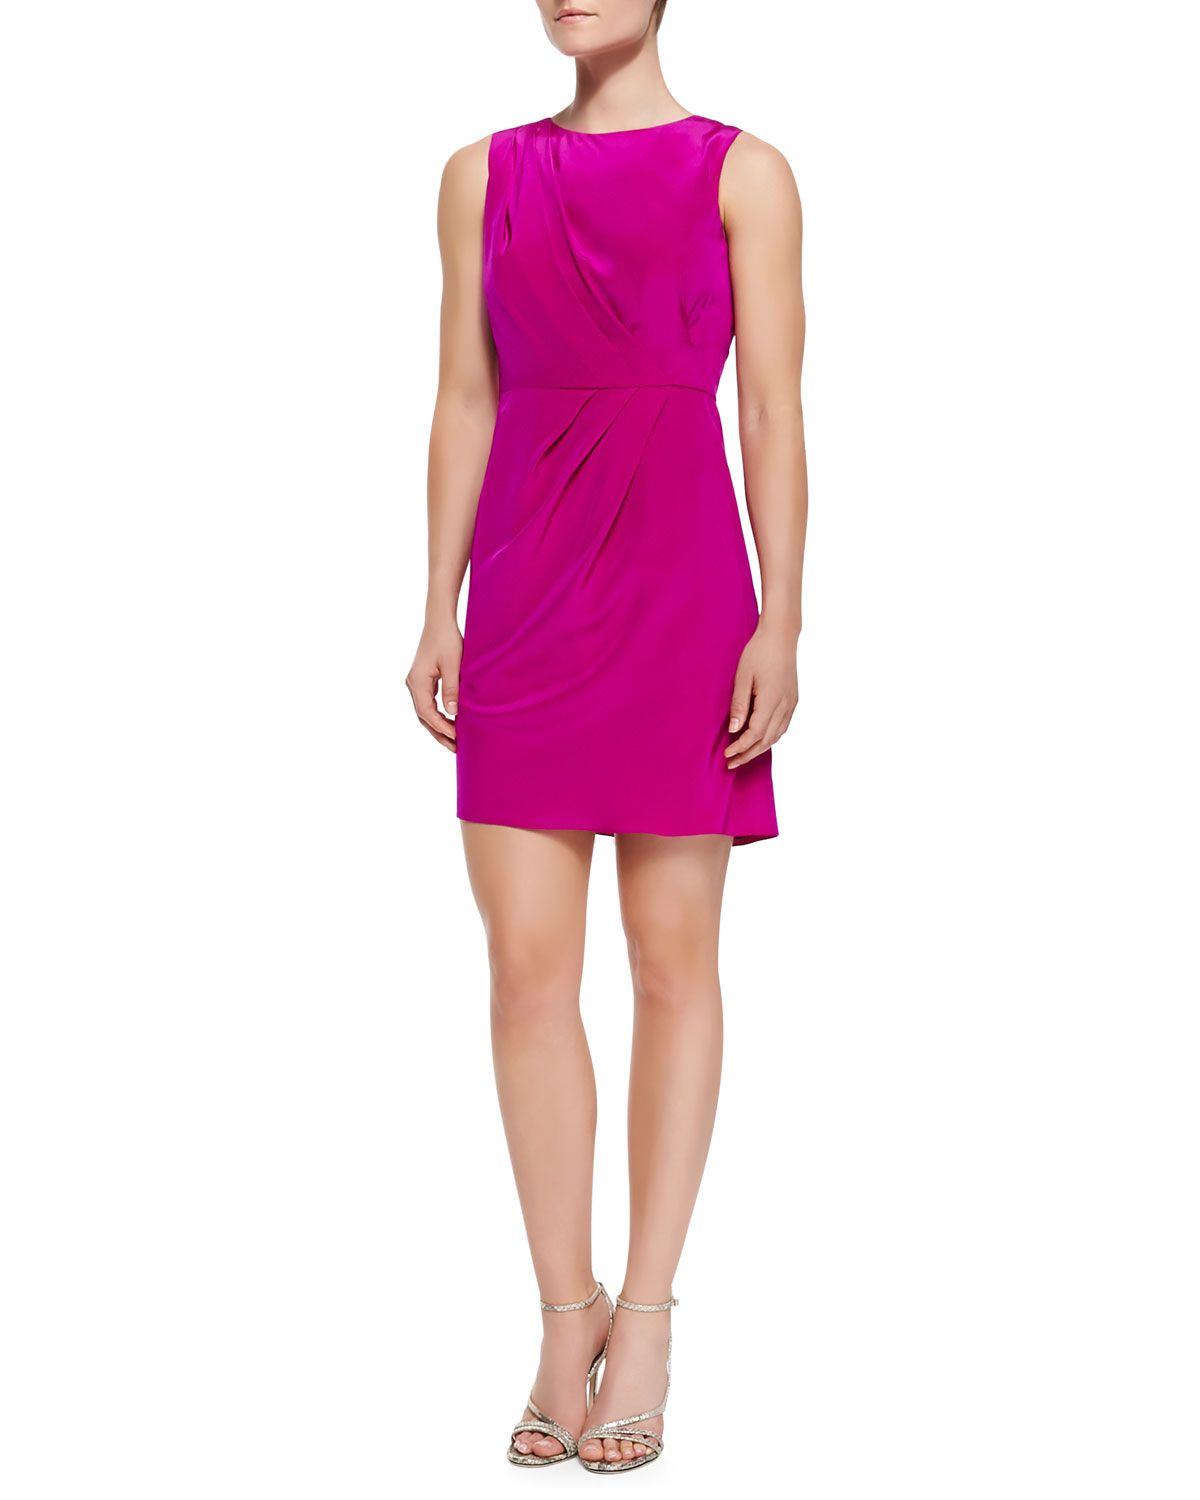 Shoshanna Sleeveless Luxe Diagonal Pleat Dress, Raspberry